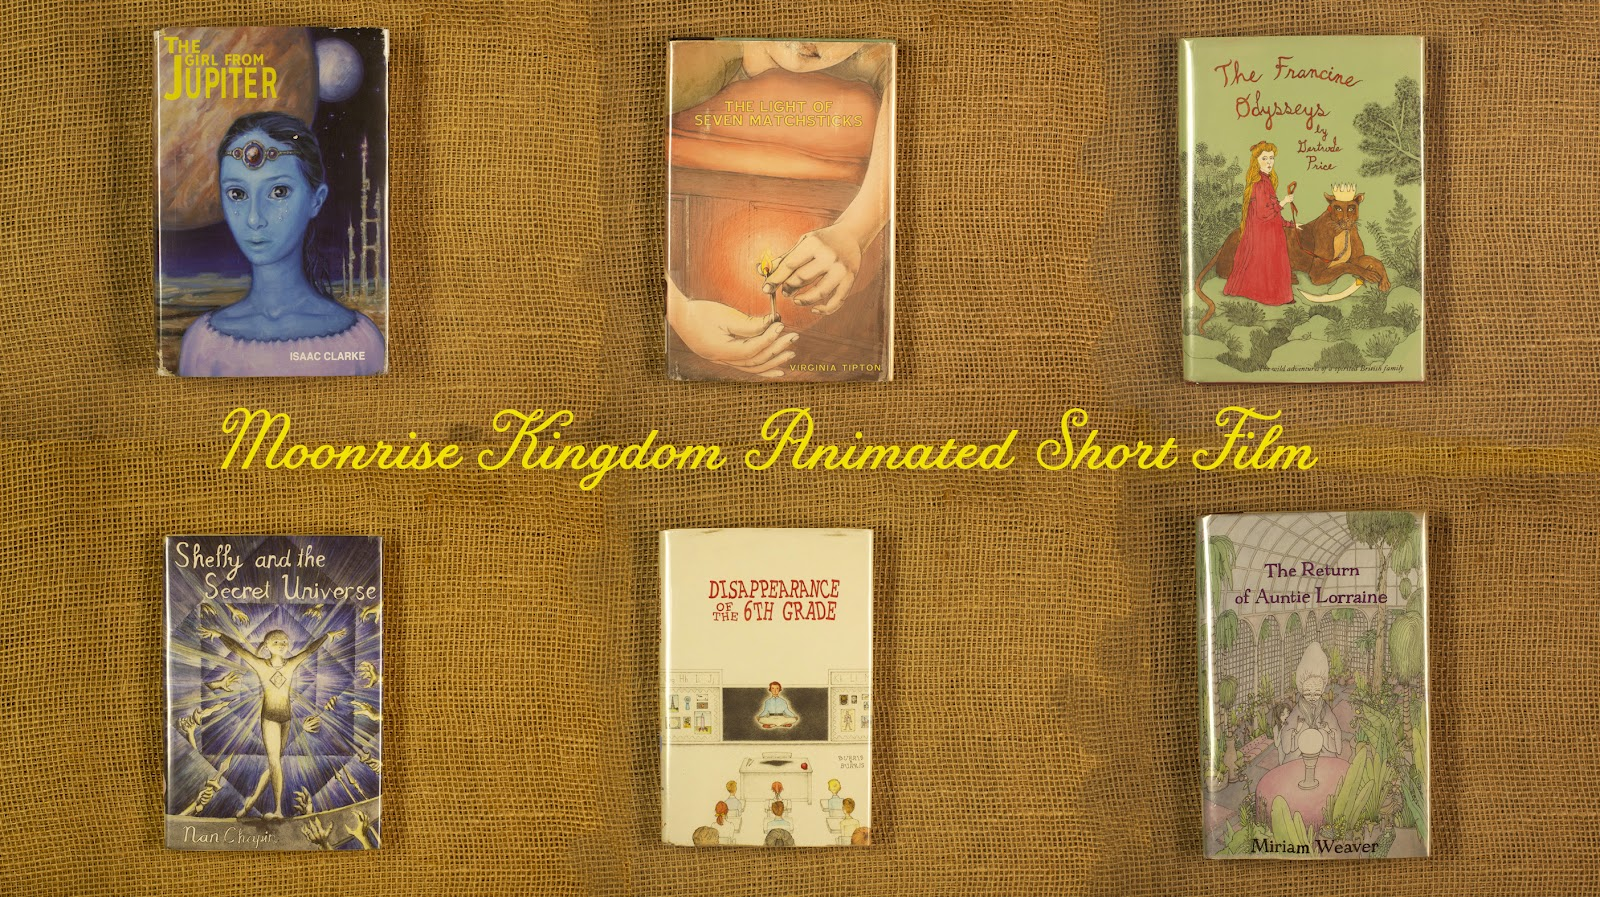 storyboardista 39 moonrise kingdom 39 wes anderson 39 s. Black Bedroom Furniture Sets. Home Design Ideas